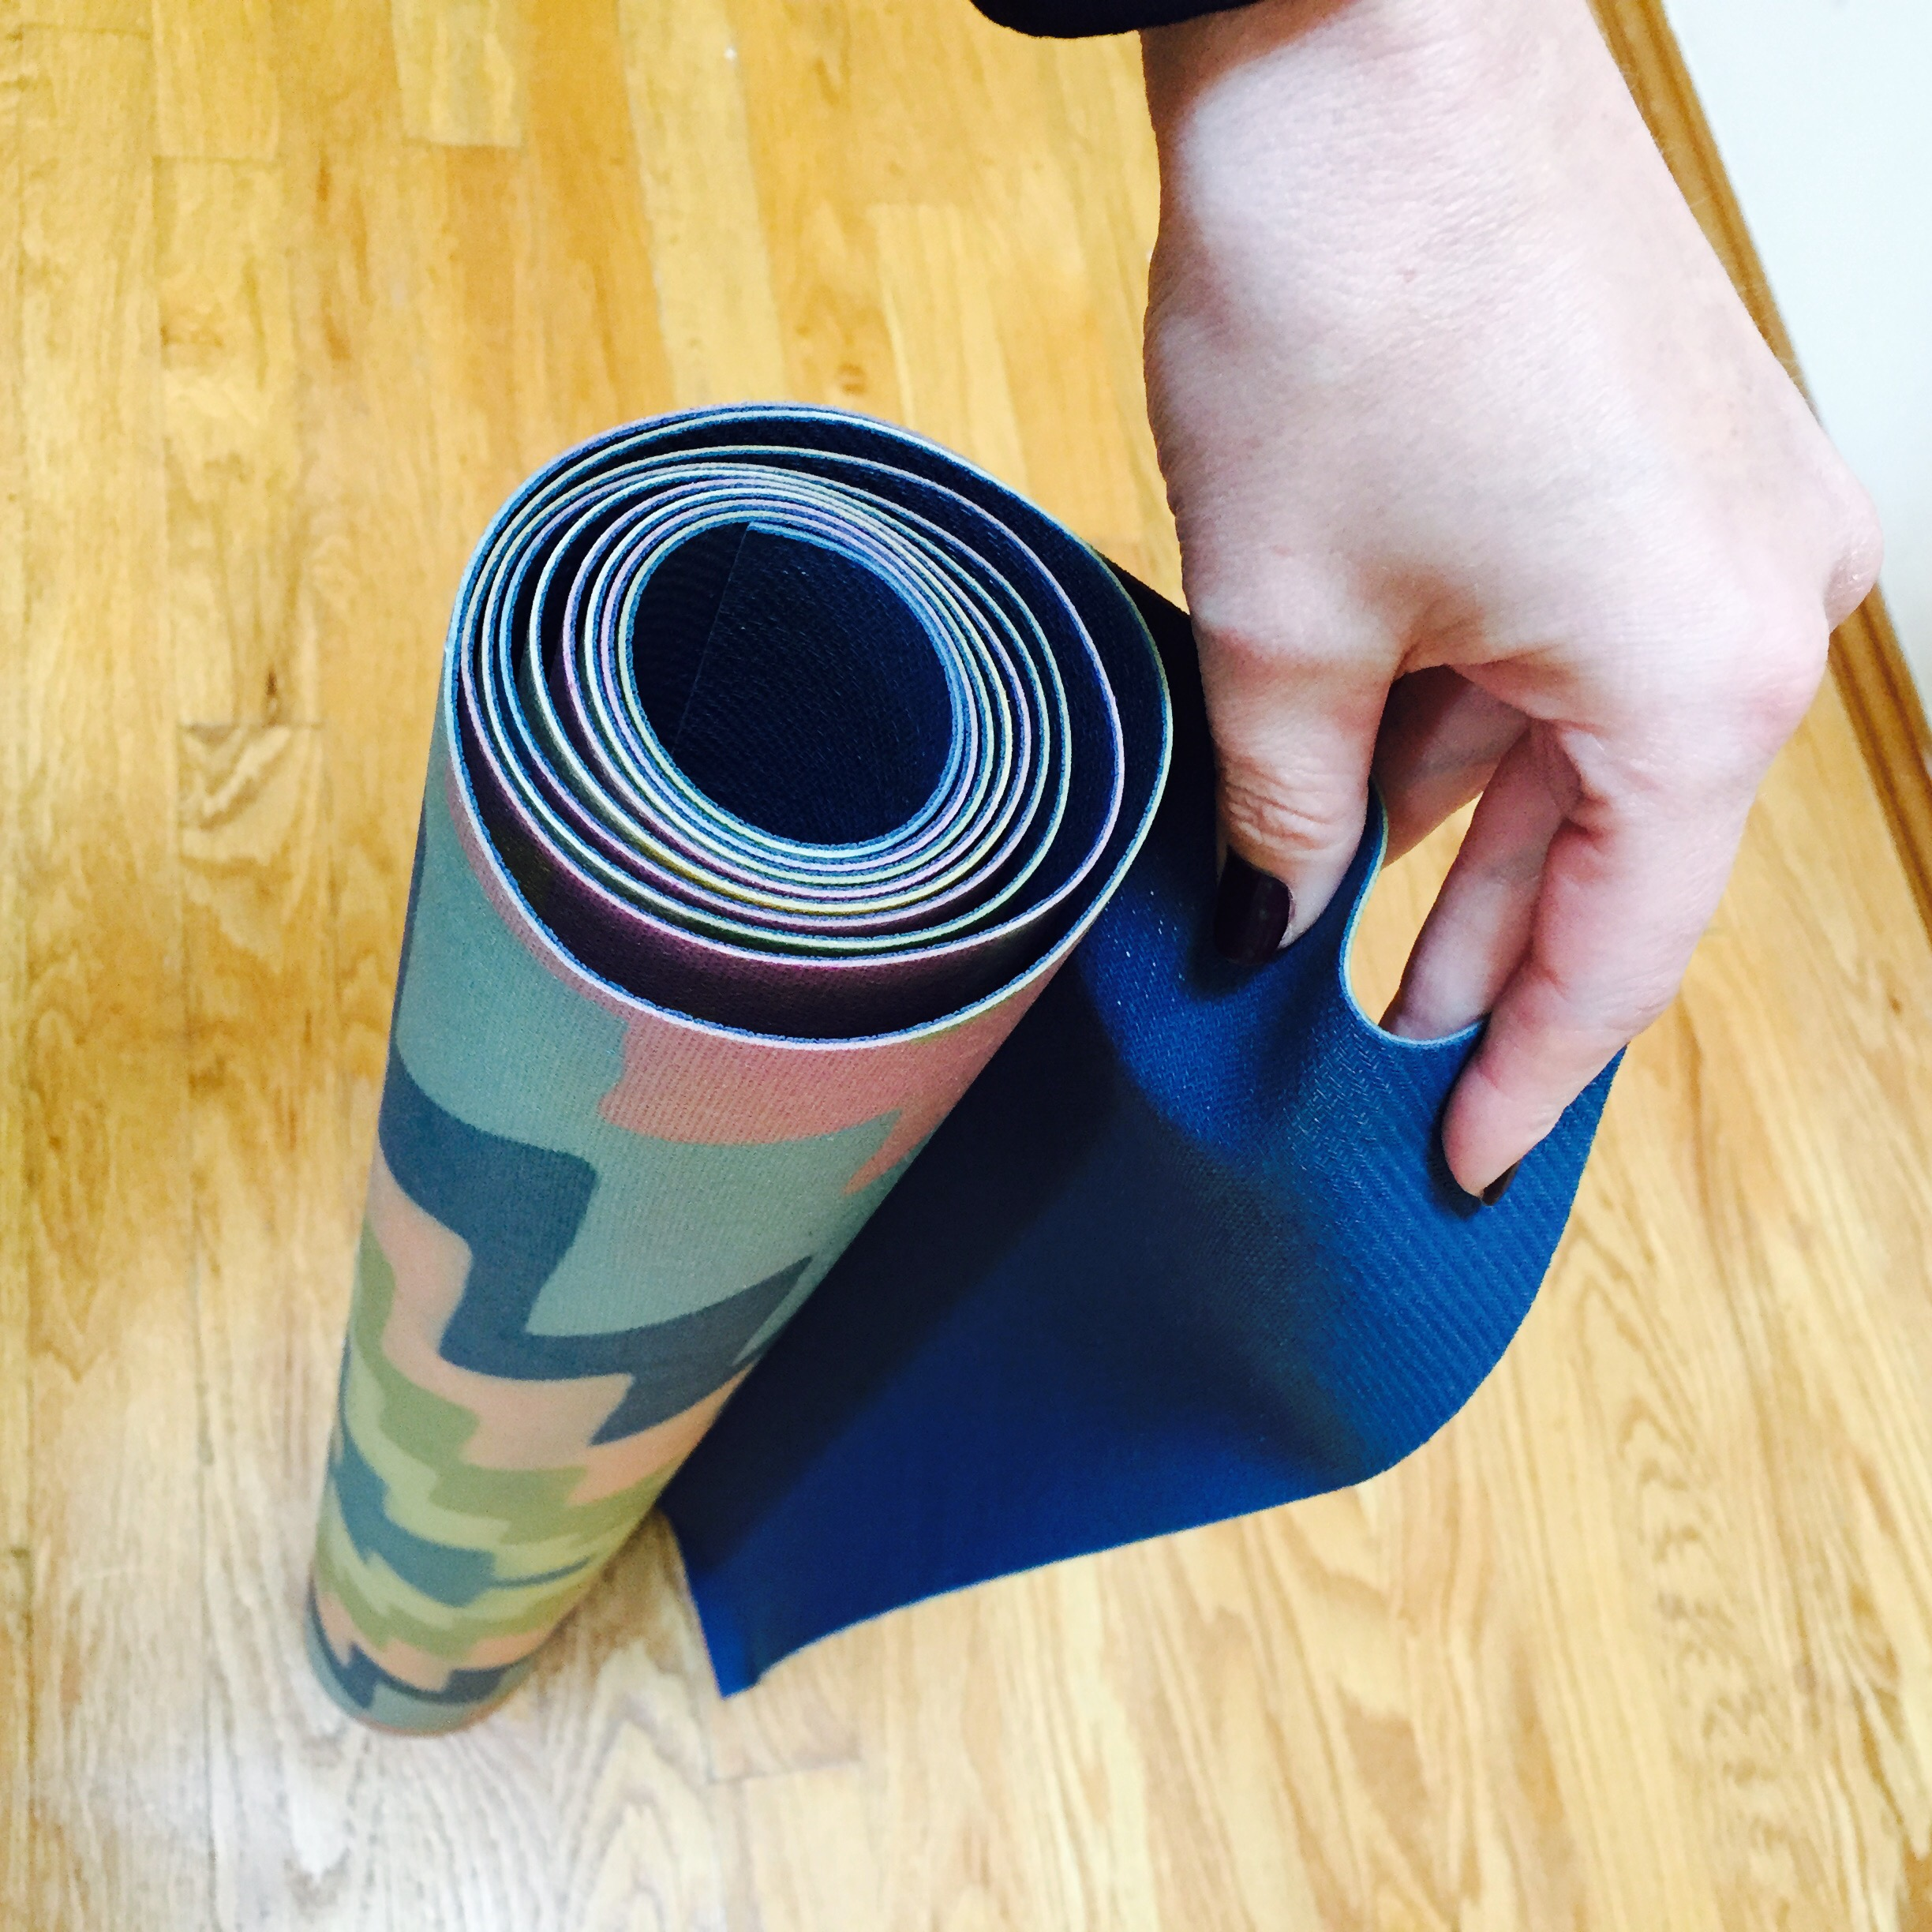 yoga real the friendly non slip mats sports mat brands tpe pin and city eco